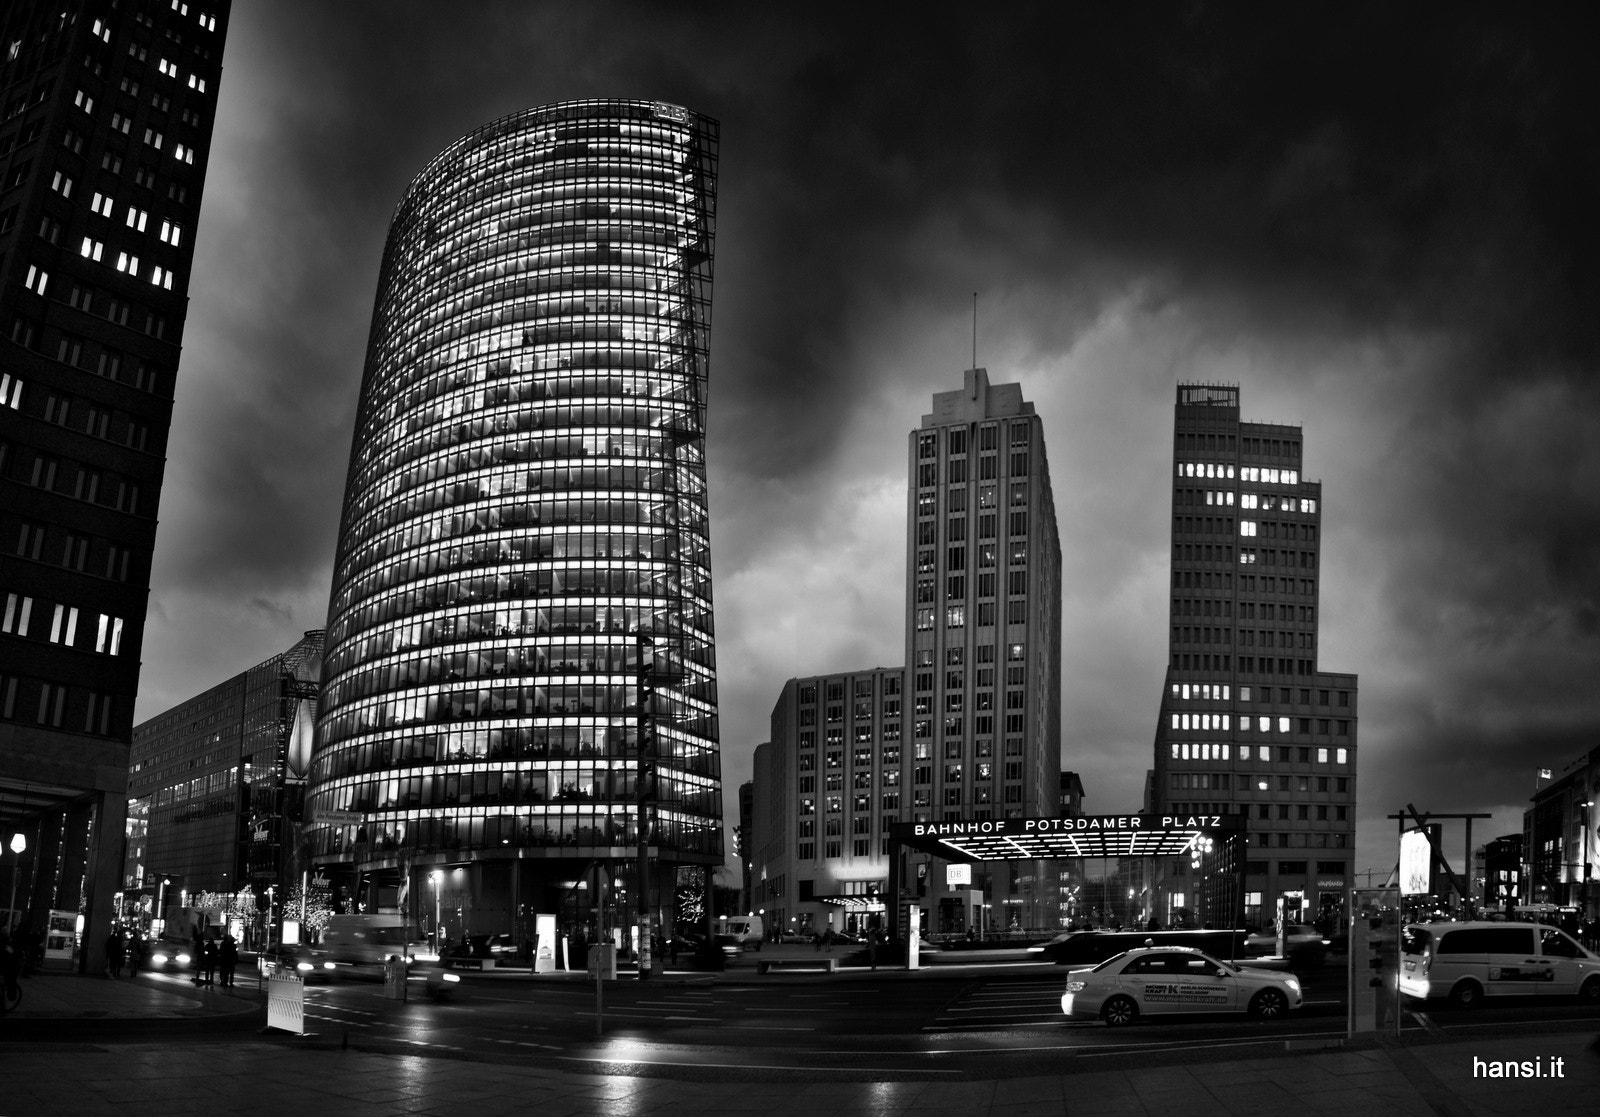 Photograph Berlin Potsdamer Platz by Hansi Weissensteiner on 500px